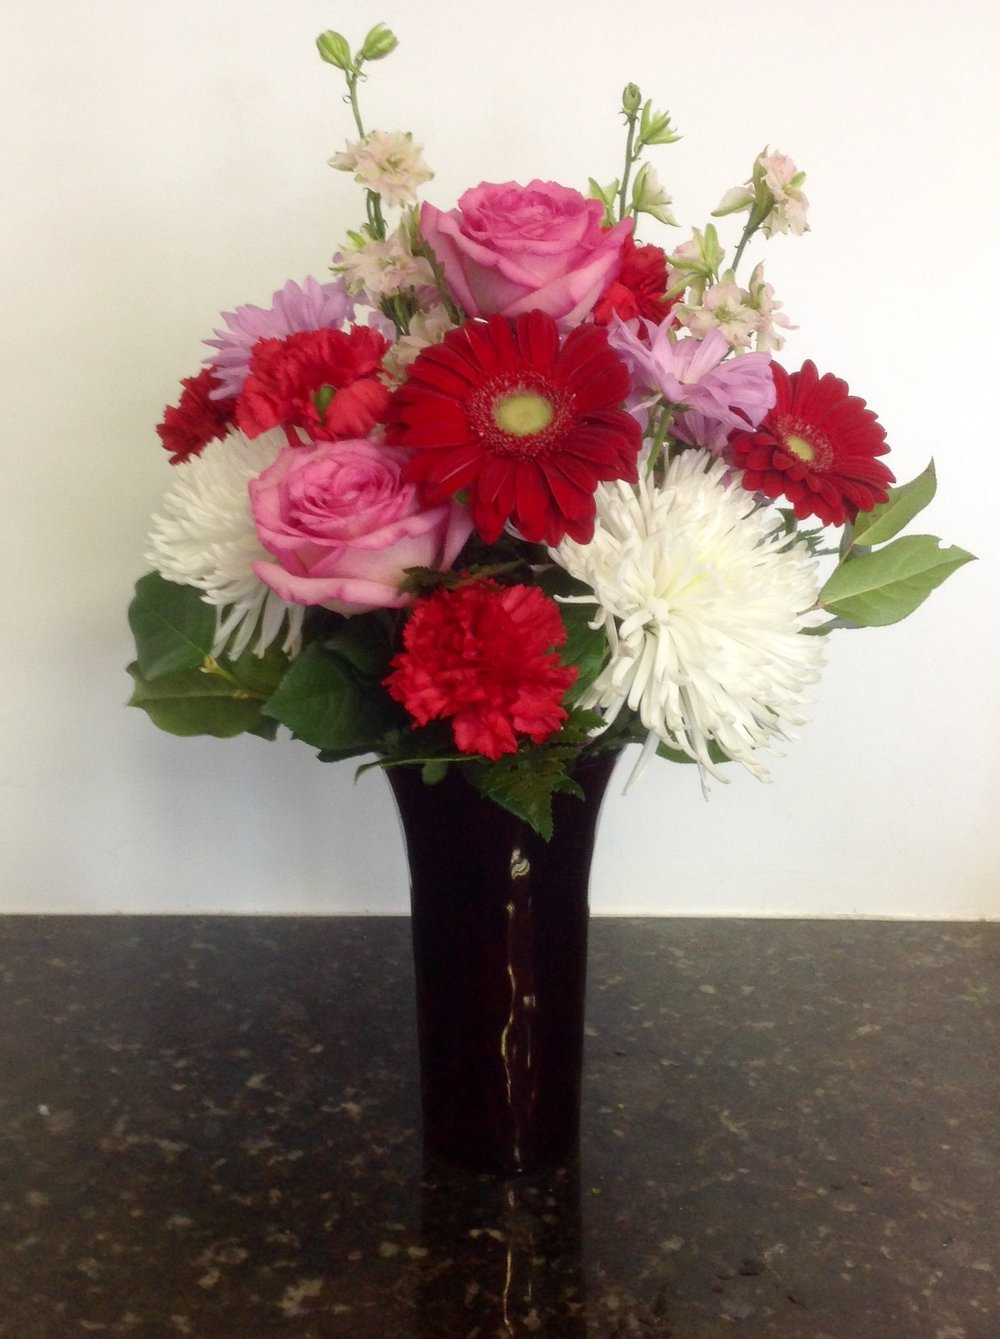 Be My Valentine Bouquet - Standard $55 • Premium (shown) $65 • Deluxe $75